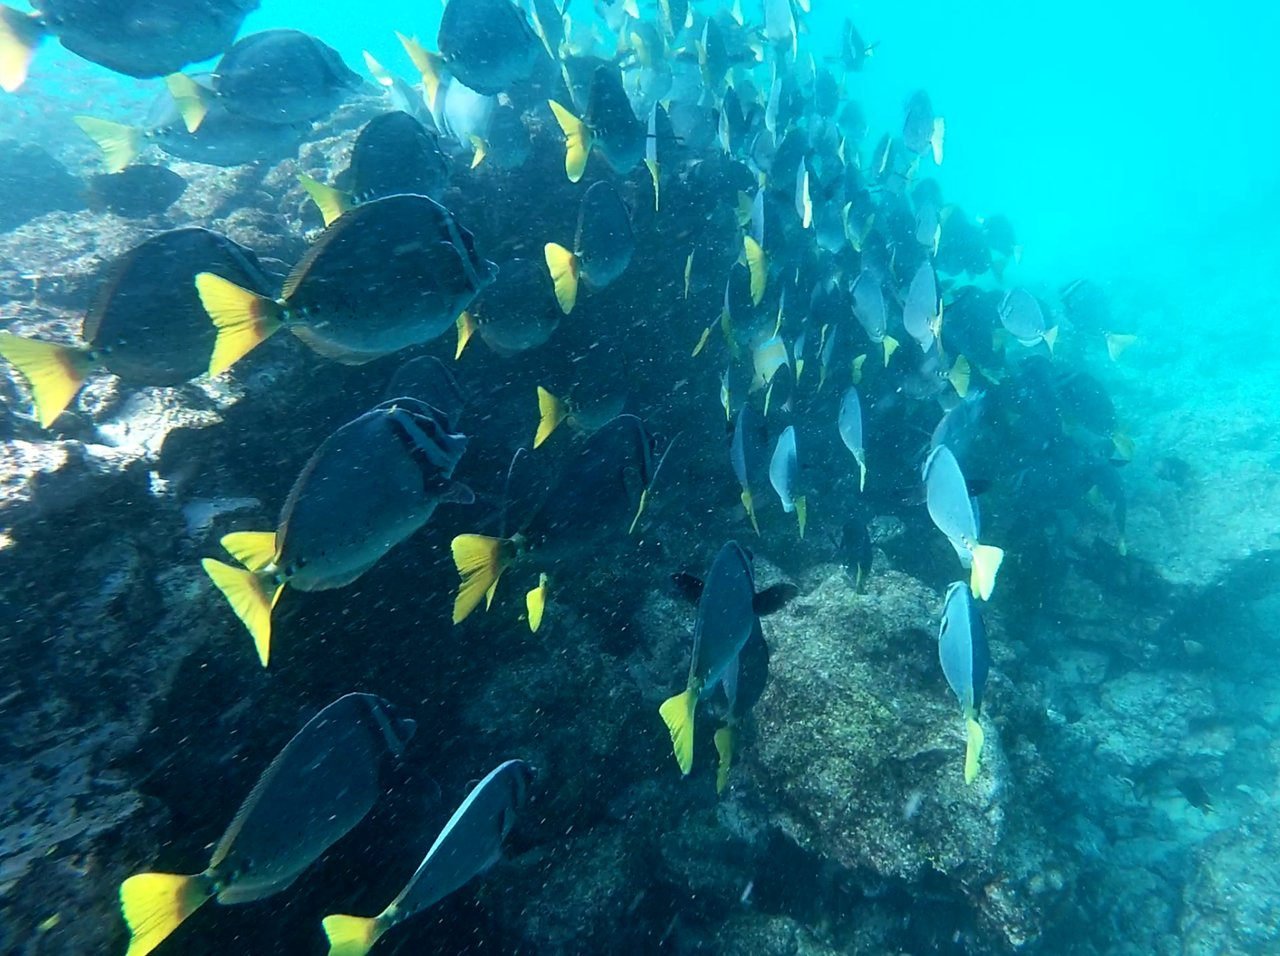 Just one of the countless schools of fish we were able to swim with | Photo taken by Peter S